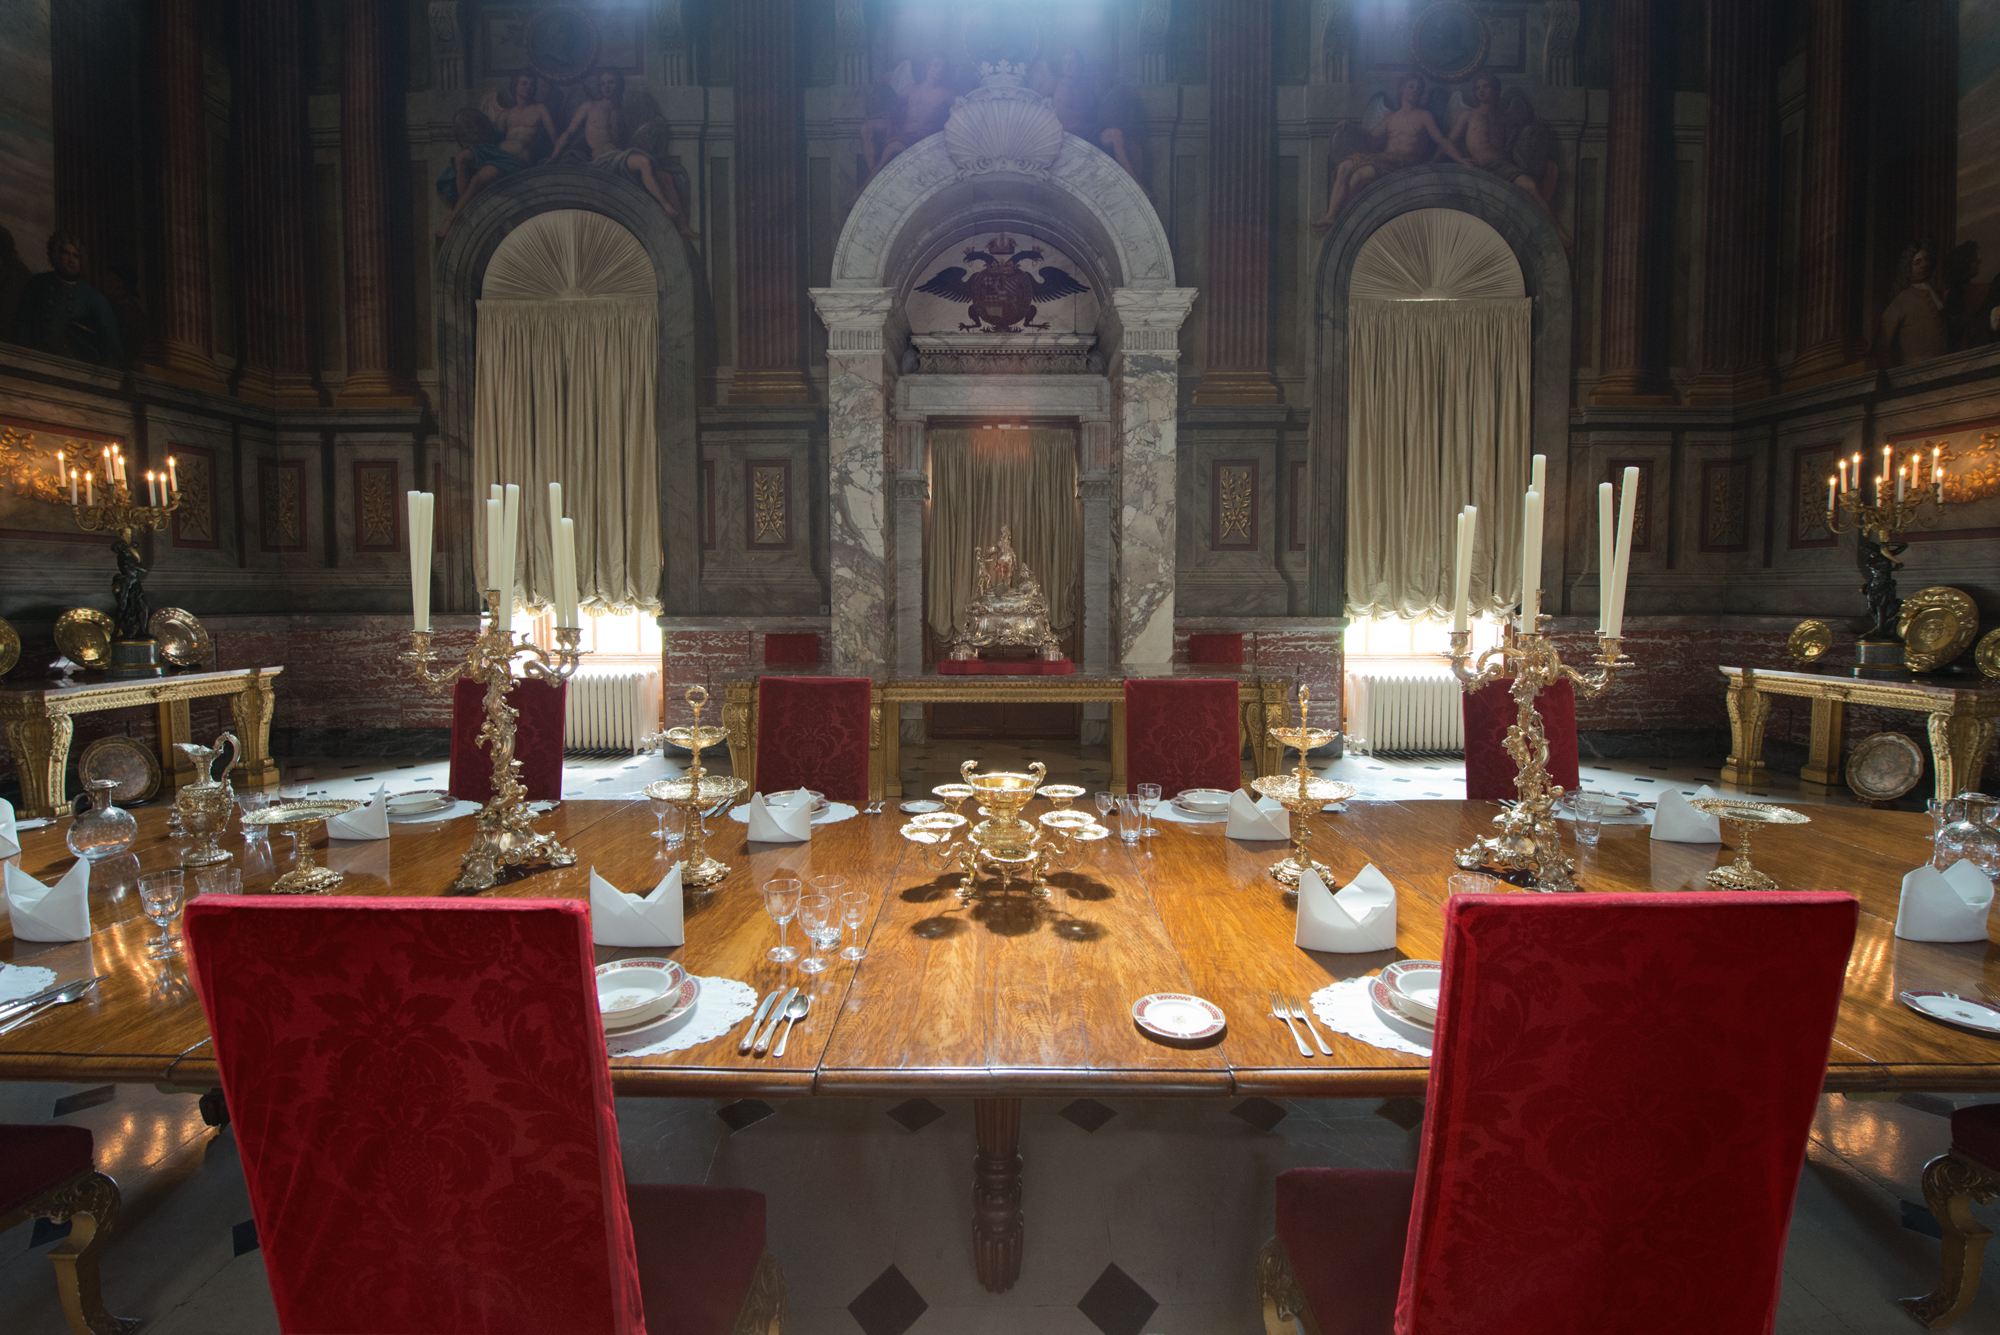 state-dining-room-blenheim-palace-woodstock-